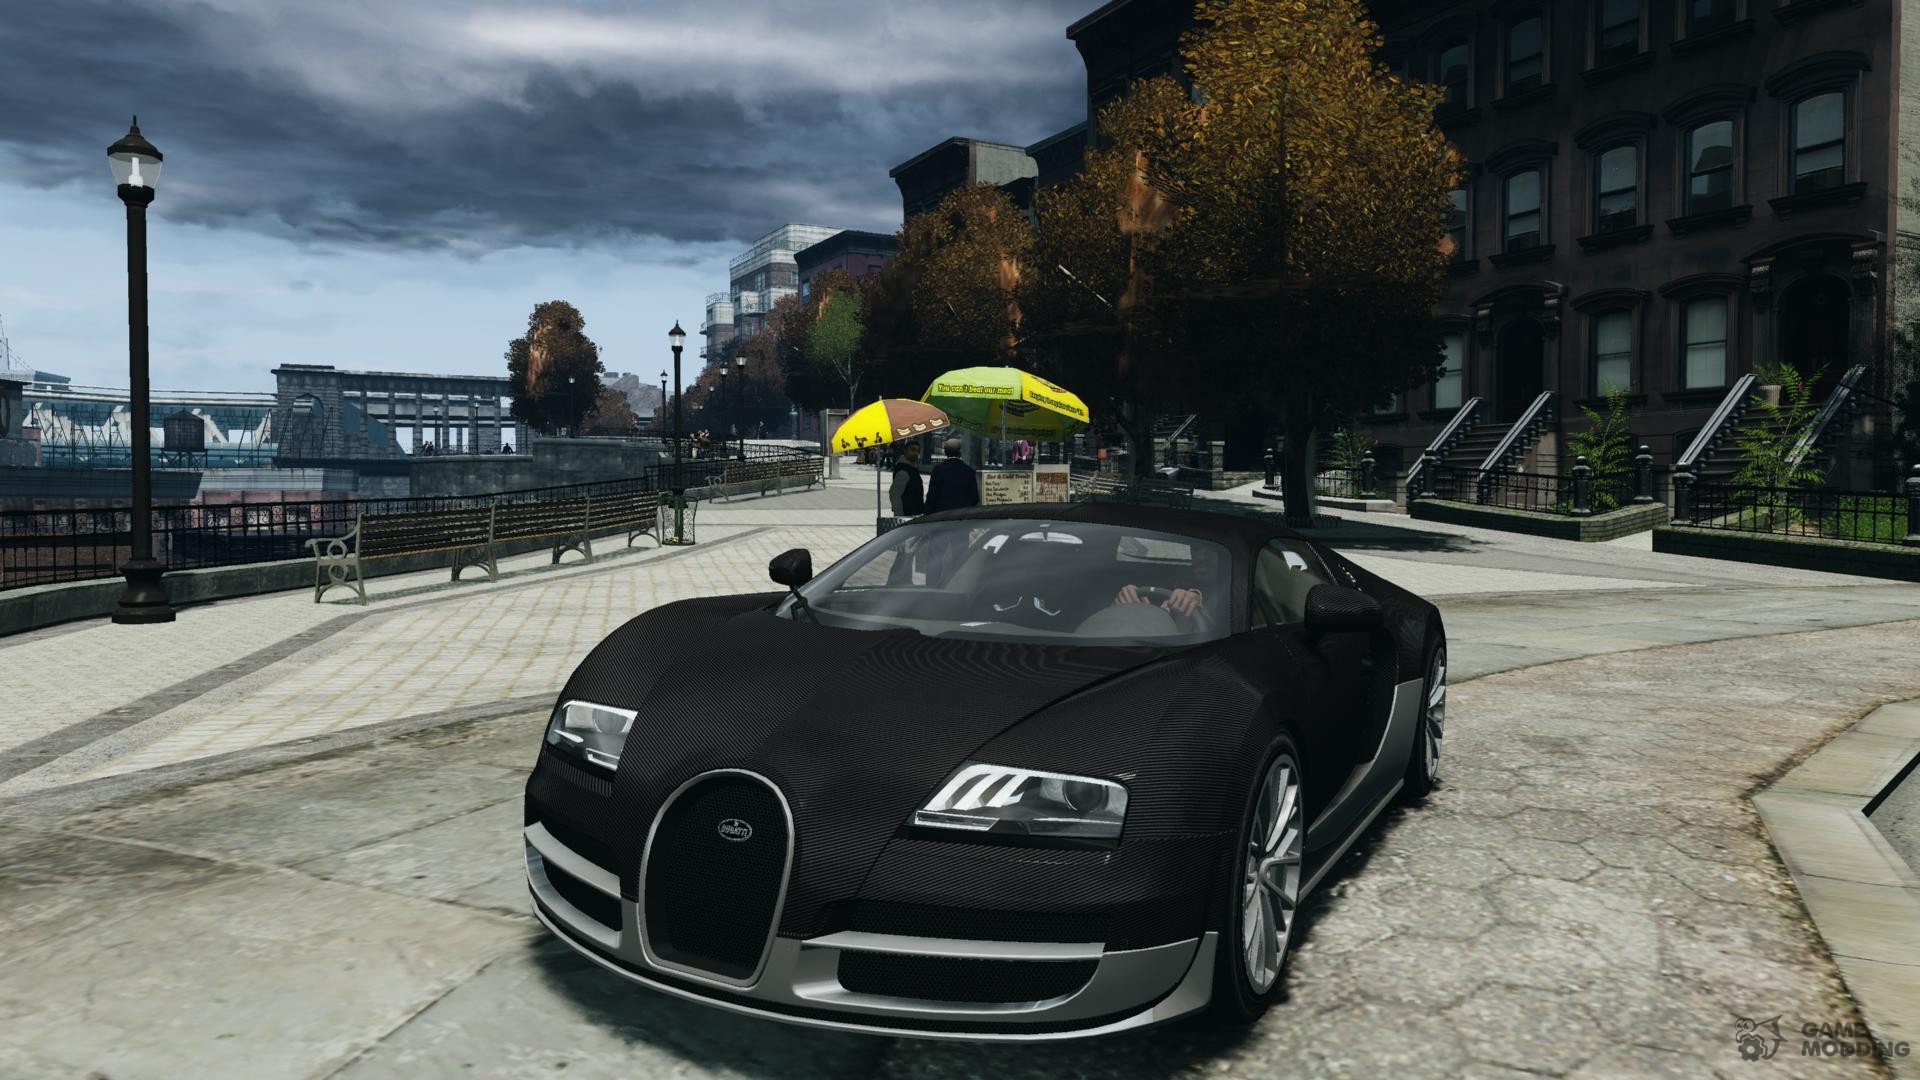 e1f0f4ab181d00c42aabea891672651717aa1151c82398350b9ad481e325af25 Wonderful Bugatti Veyron Xbox 360 Games Cars Trend